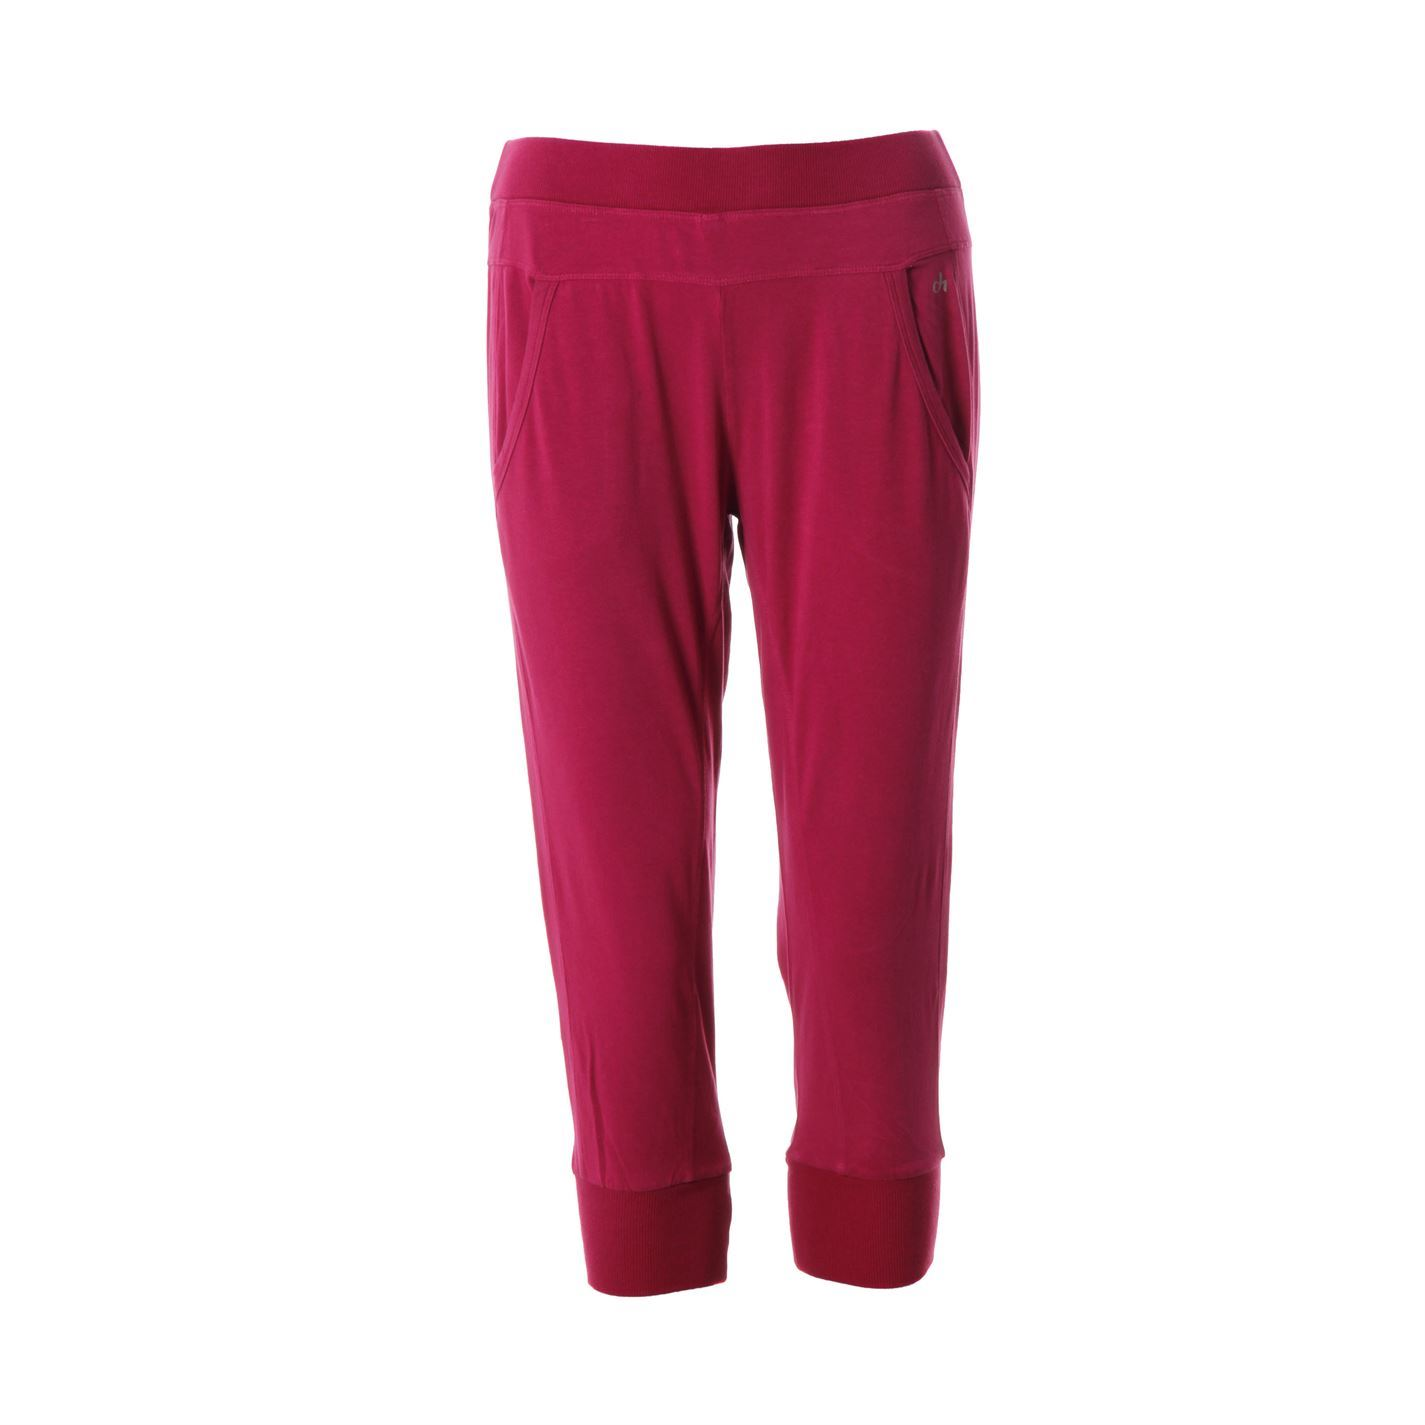 Fantastic Please Enter Your Name And Email And Well Notify You As Soon As Its In Stock The Nike Diamond Invader ThreeQuarter Womens Softball Pants Are Designed To Stay In Place During Play And Offer Durability Where You Need It Most I Really